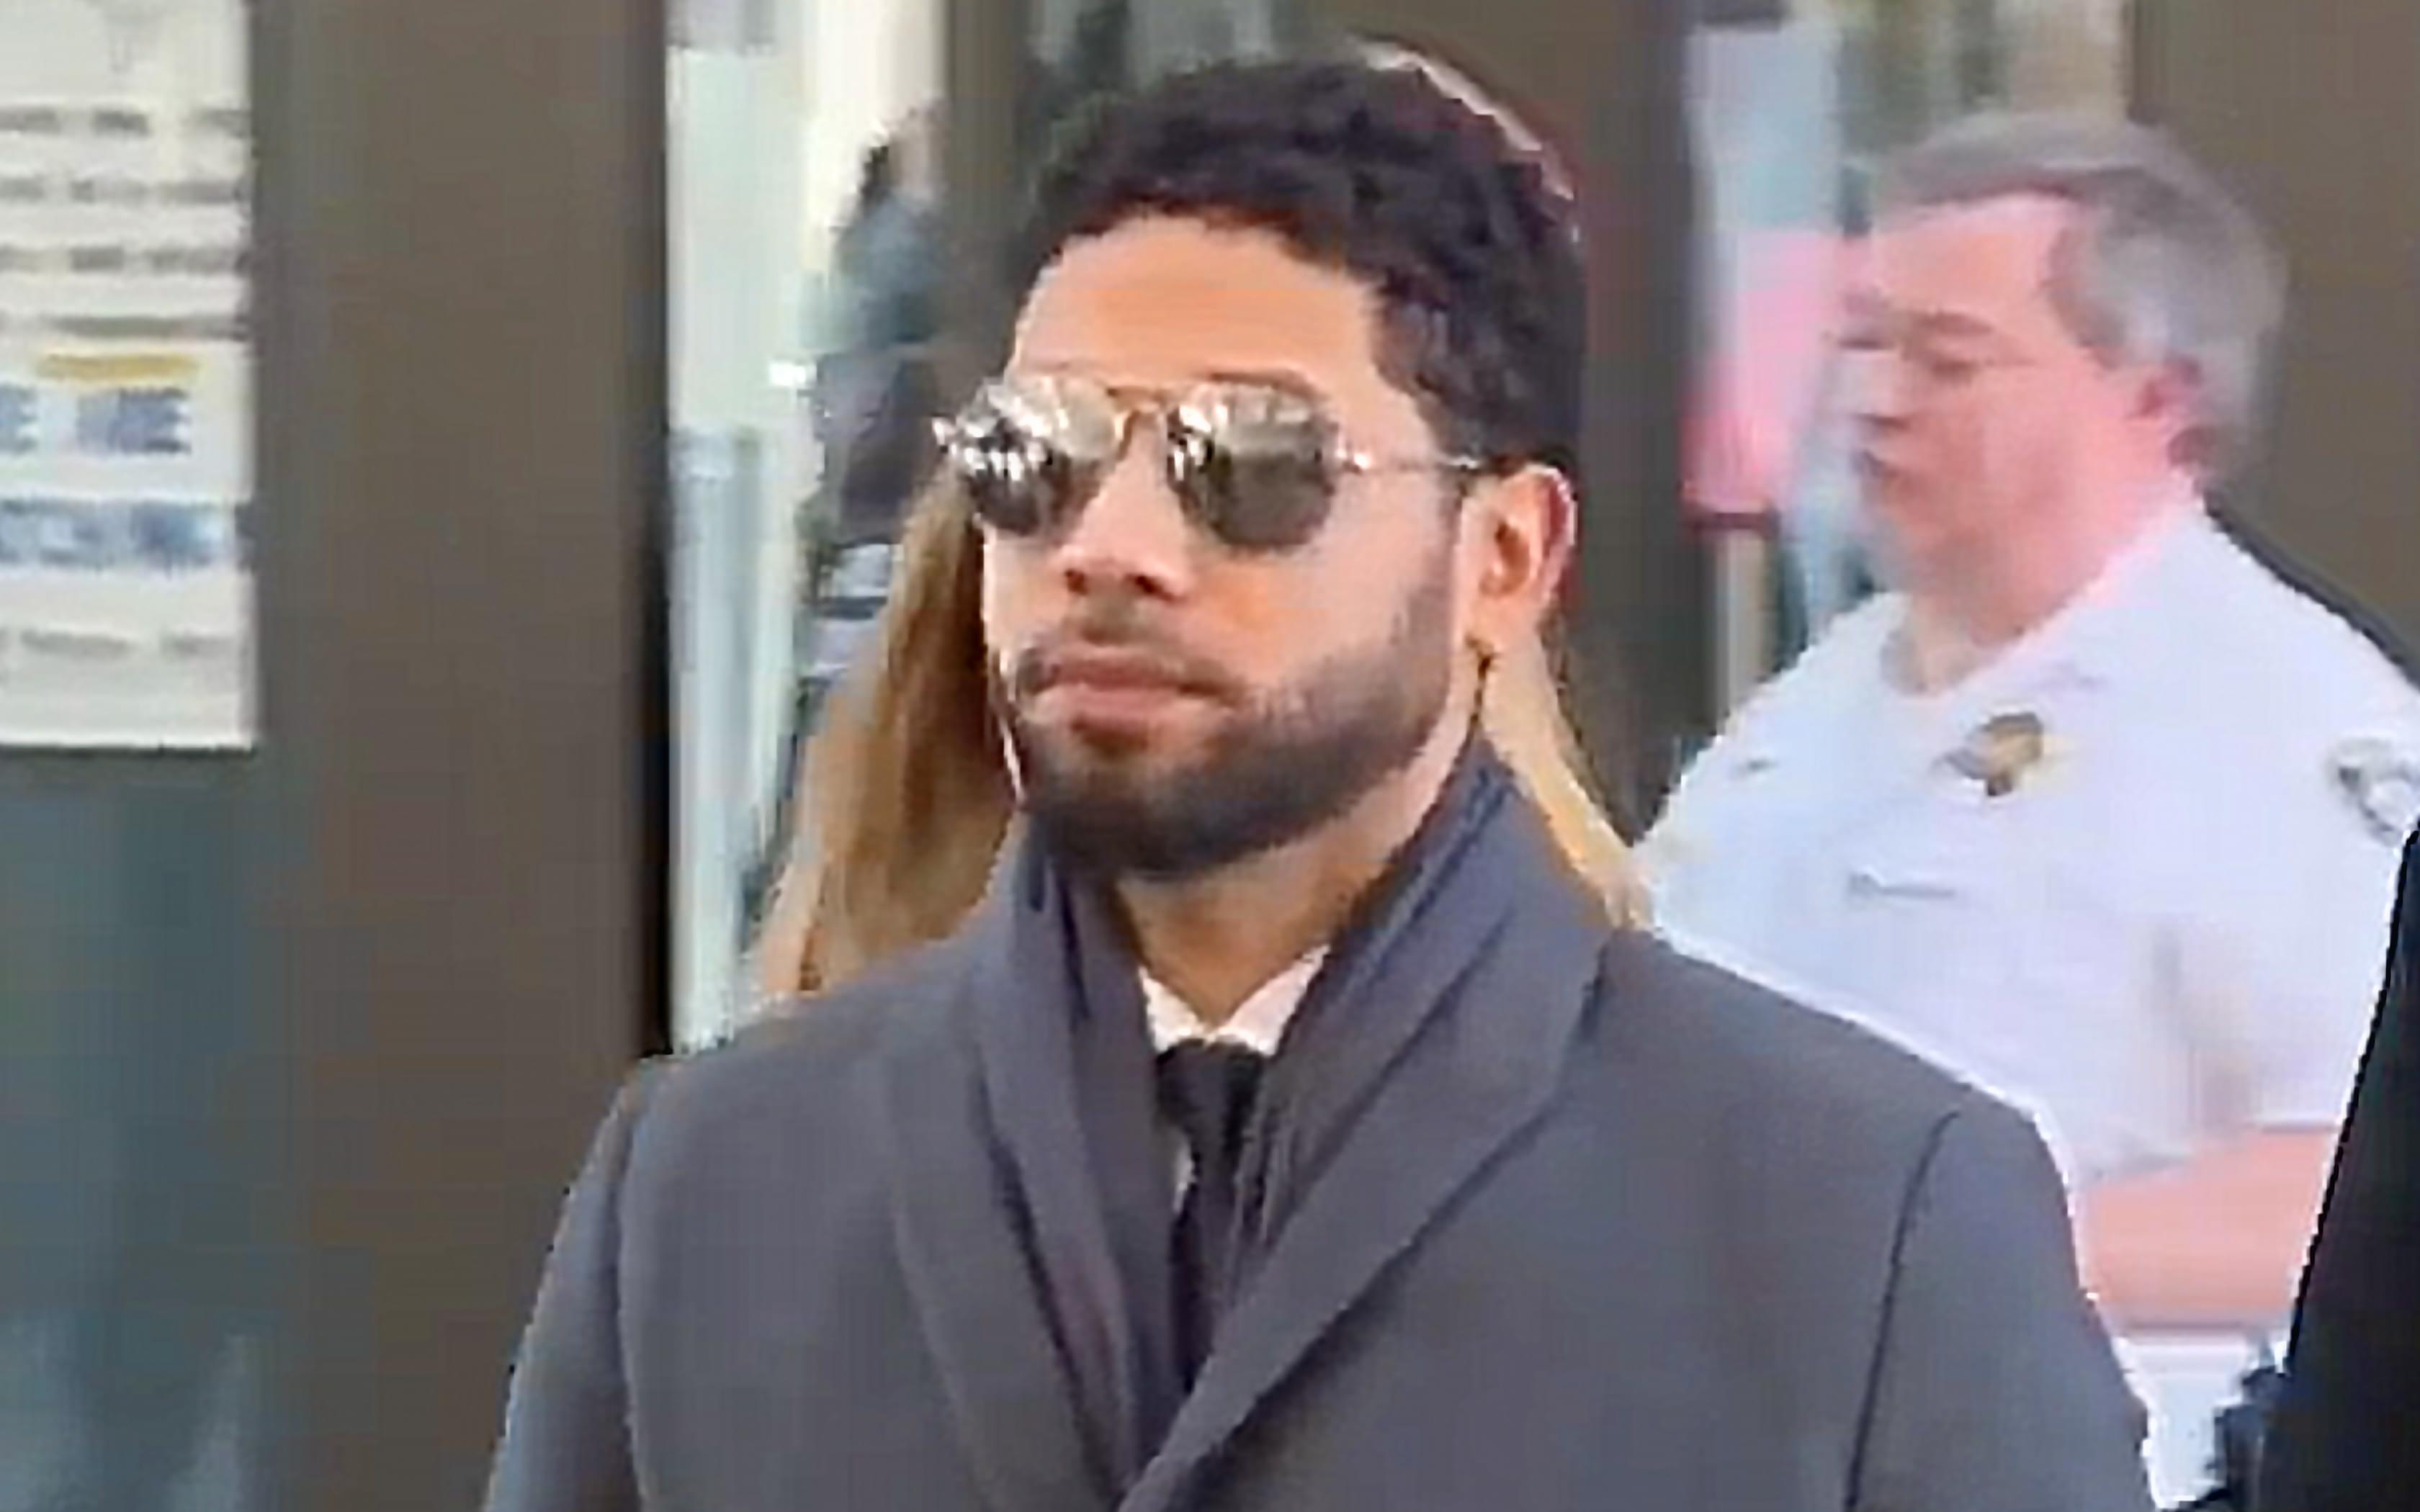 Jussie Smollett is the most Googled person of 2019